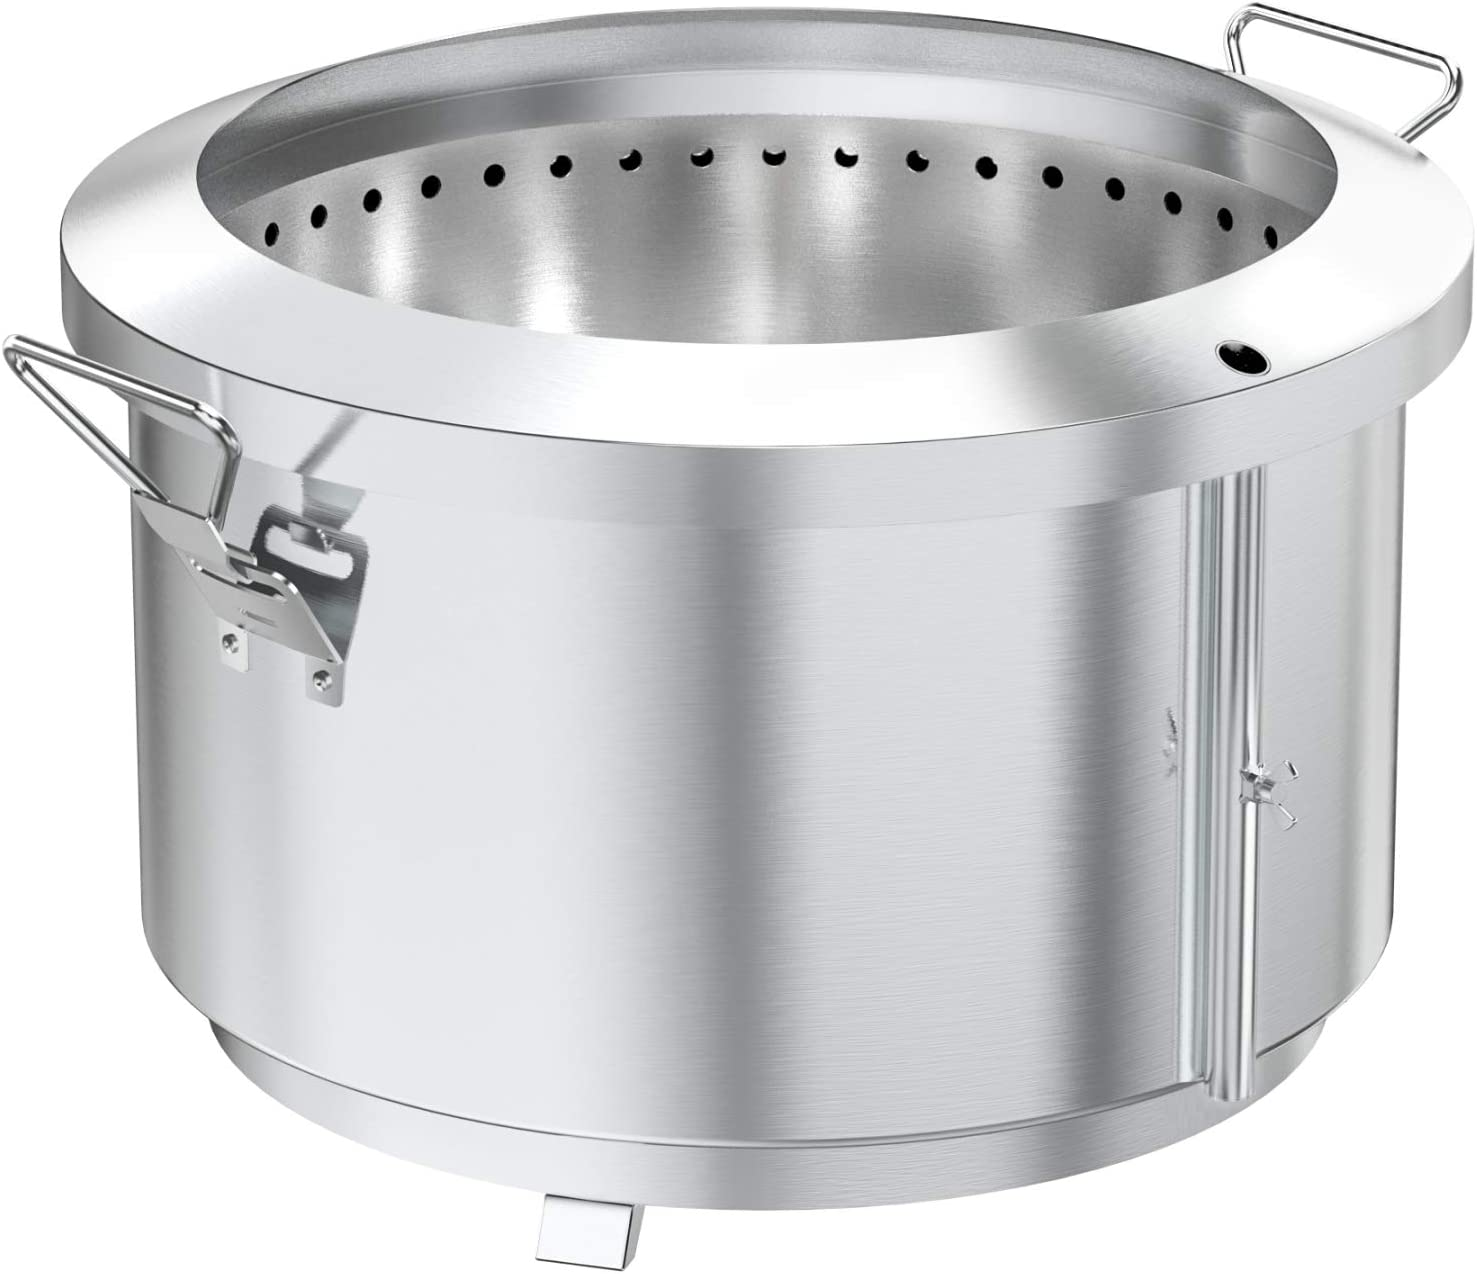 onlyfire 24 Inch Deluxe Stainless Steel Max 78% OFF Po Outdoor Pit Fire Smokeless